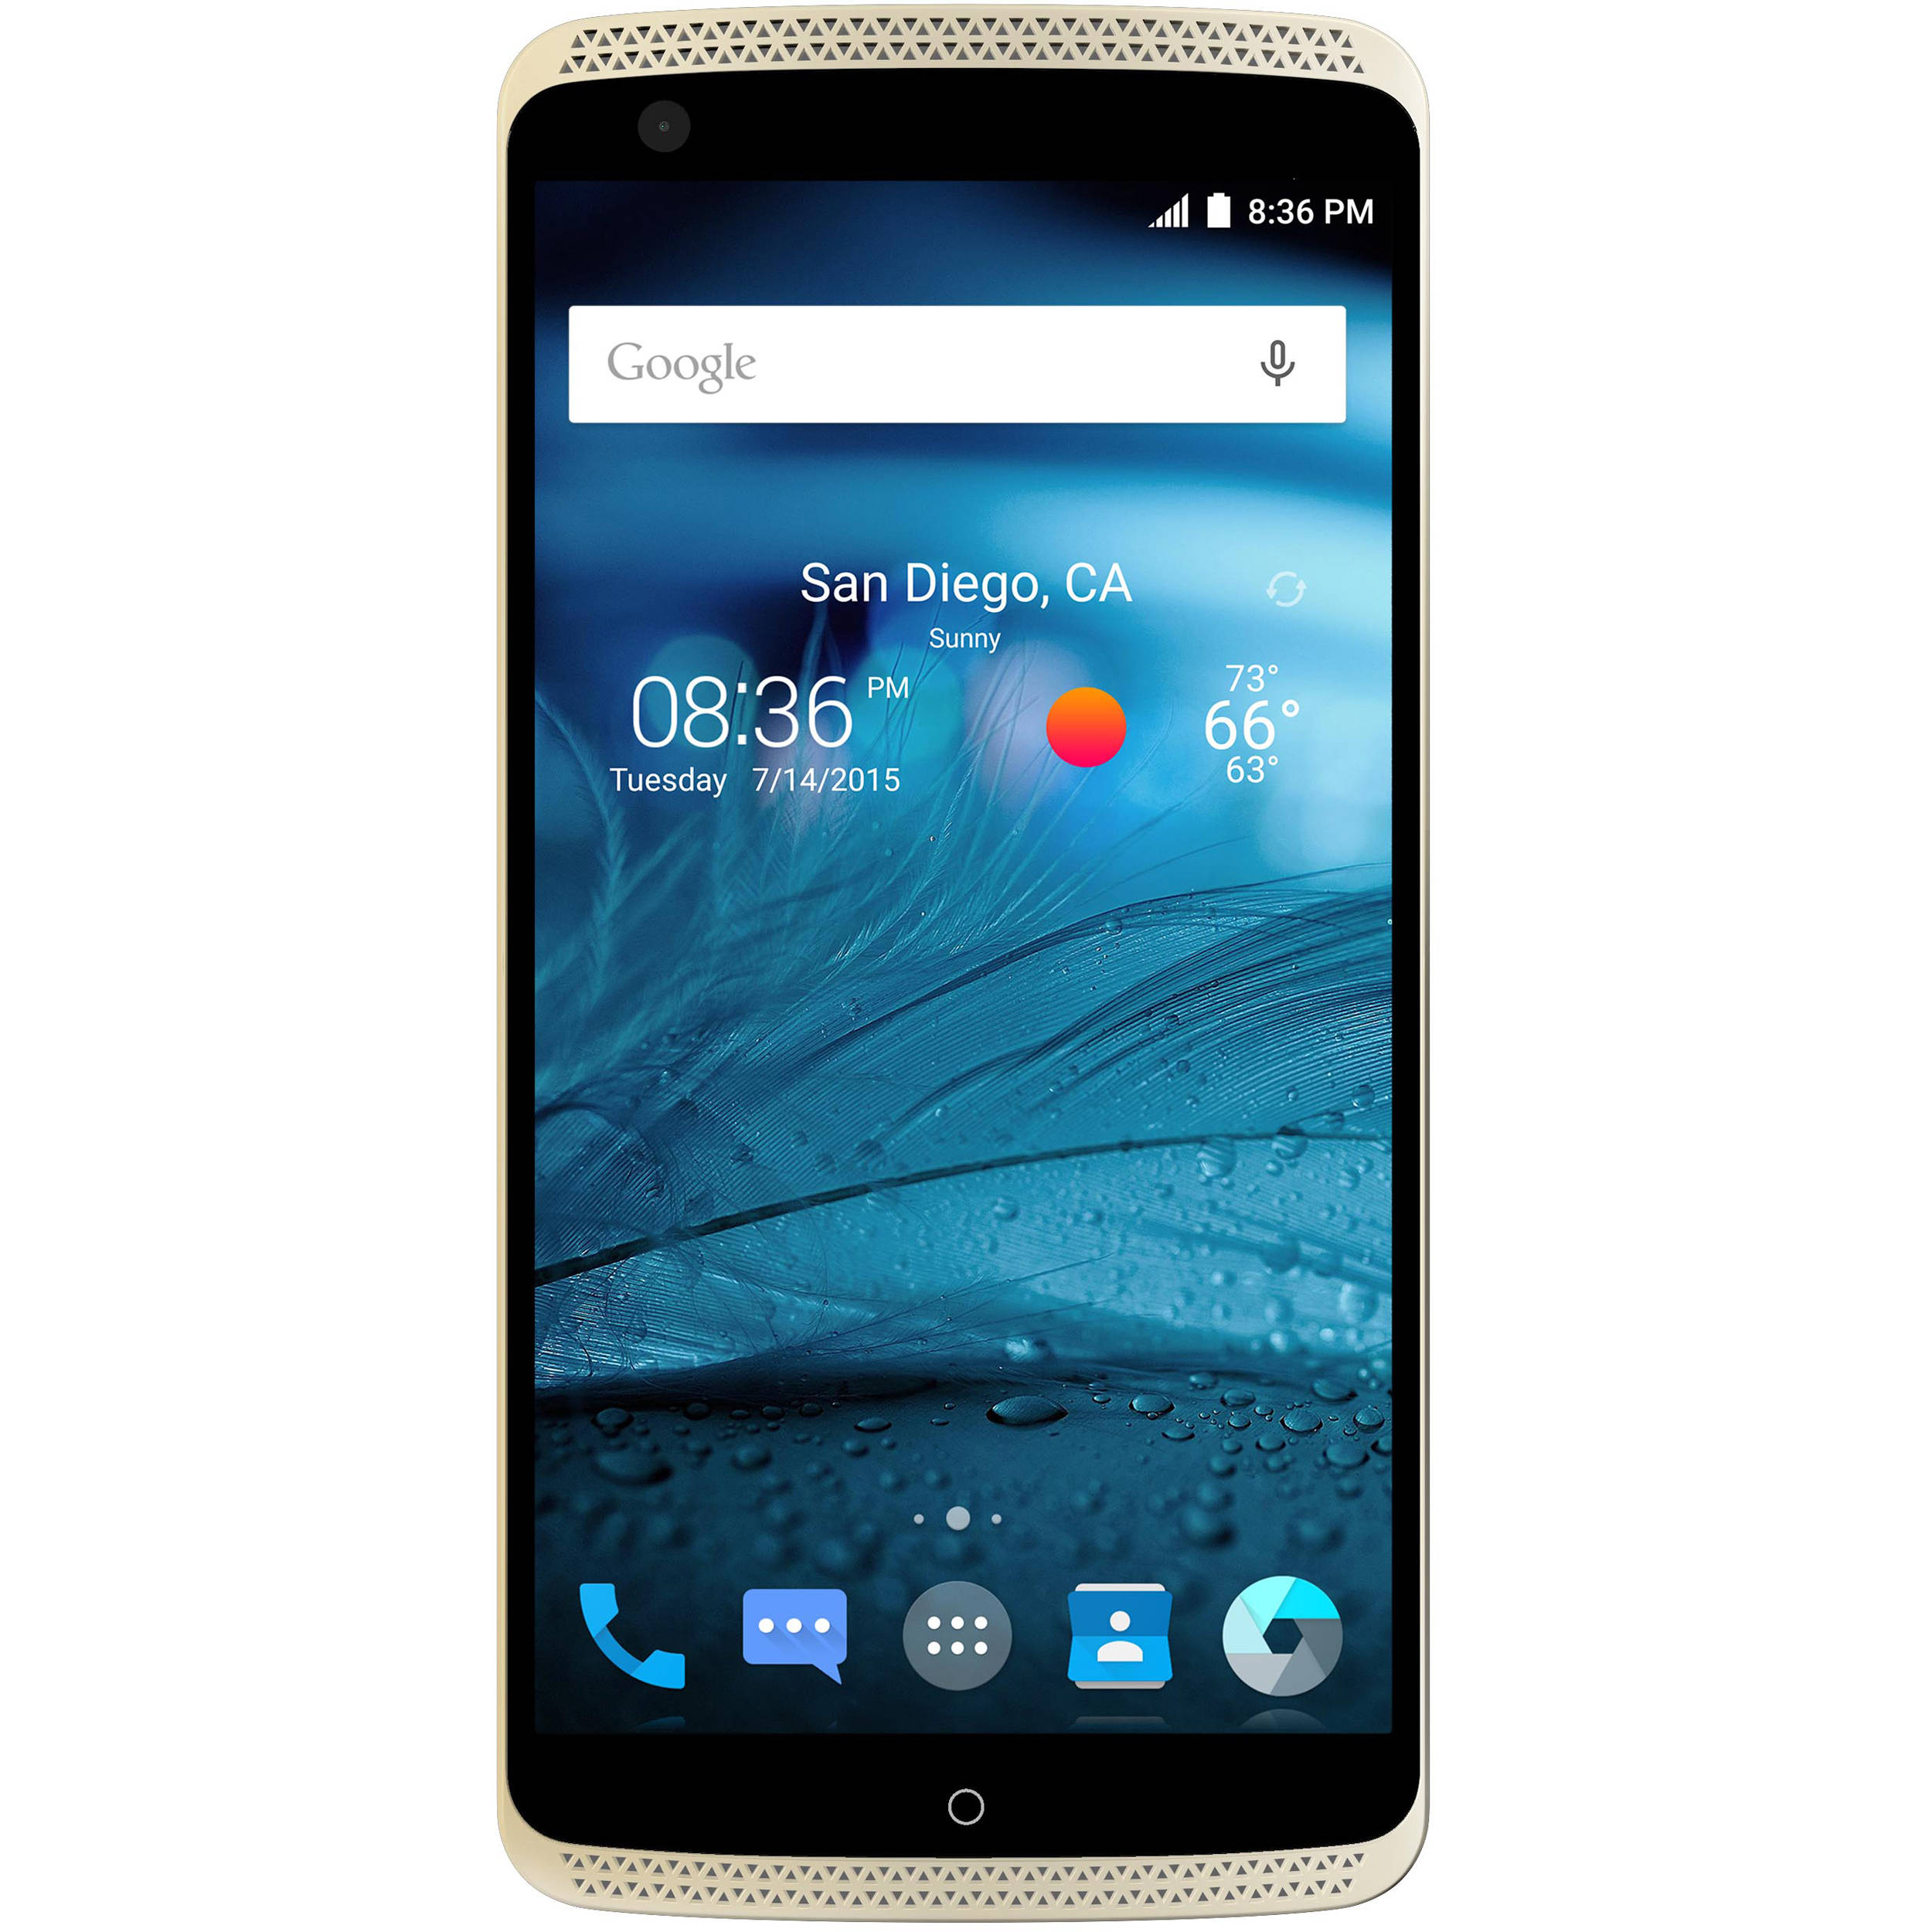 zte axon pro 32gb Airvax features